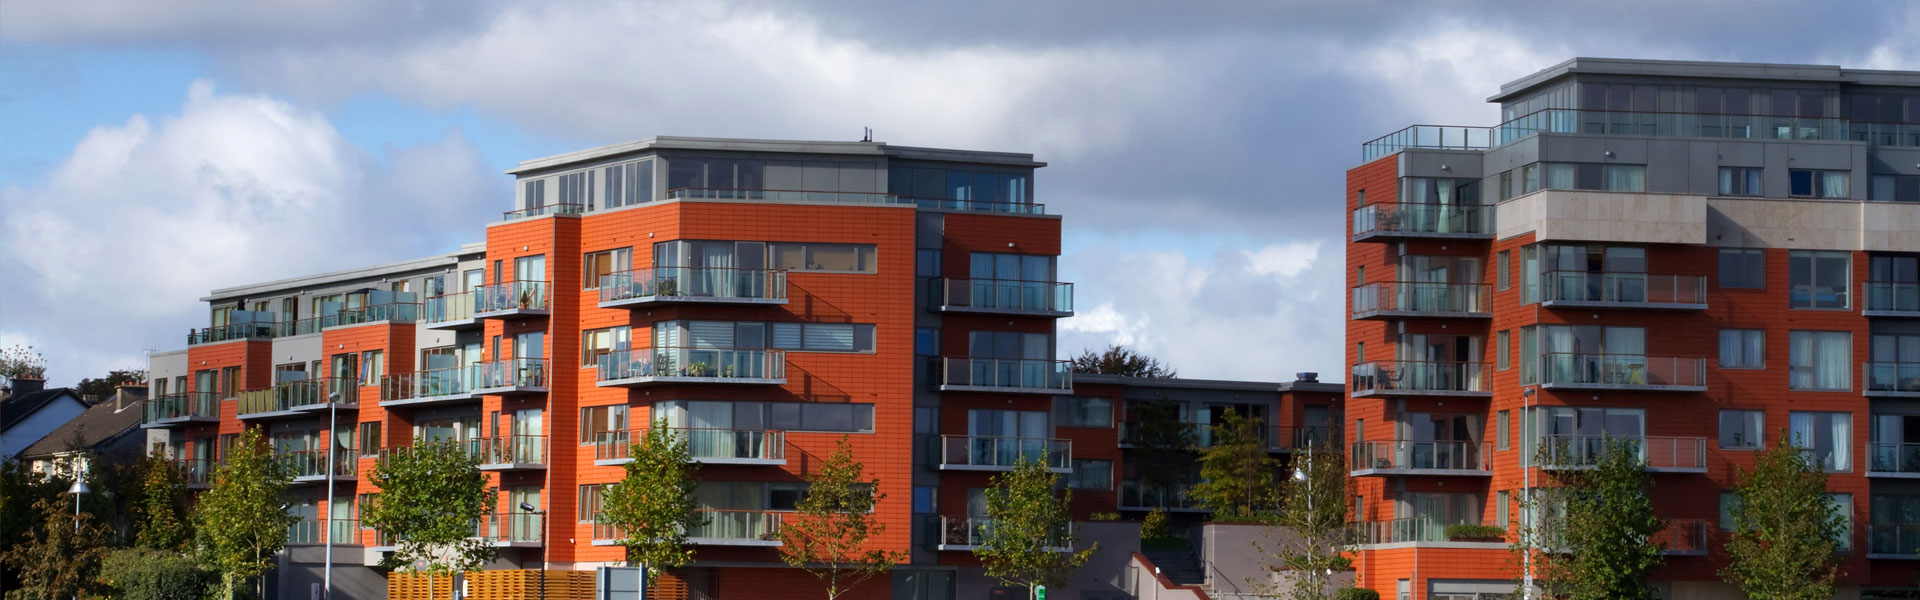 Housing agency in Clonmeen experts